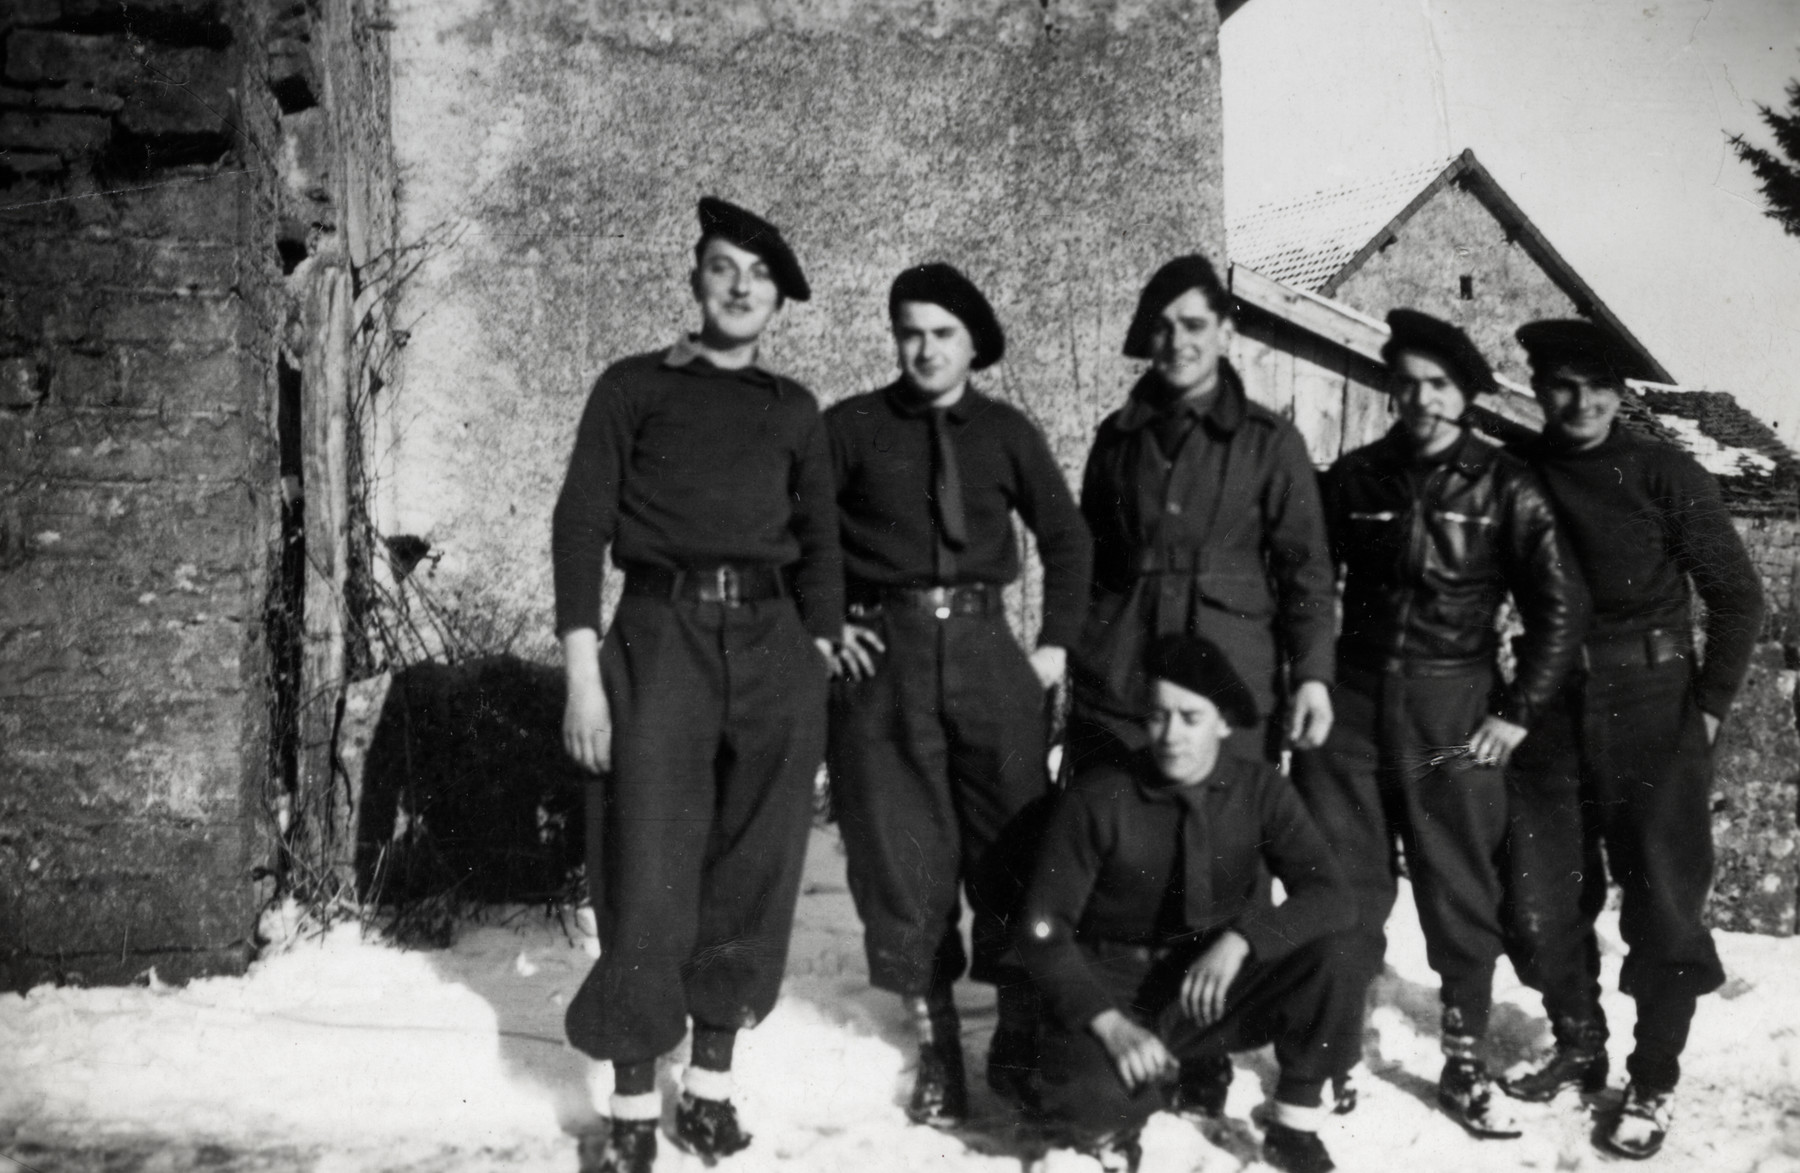 Group portrait of a unit of the French resistance.  Andre Levy is pictured on the far right.